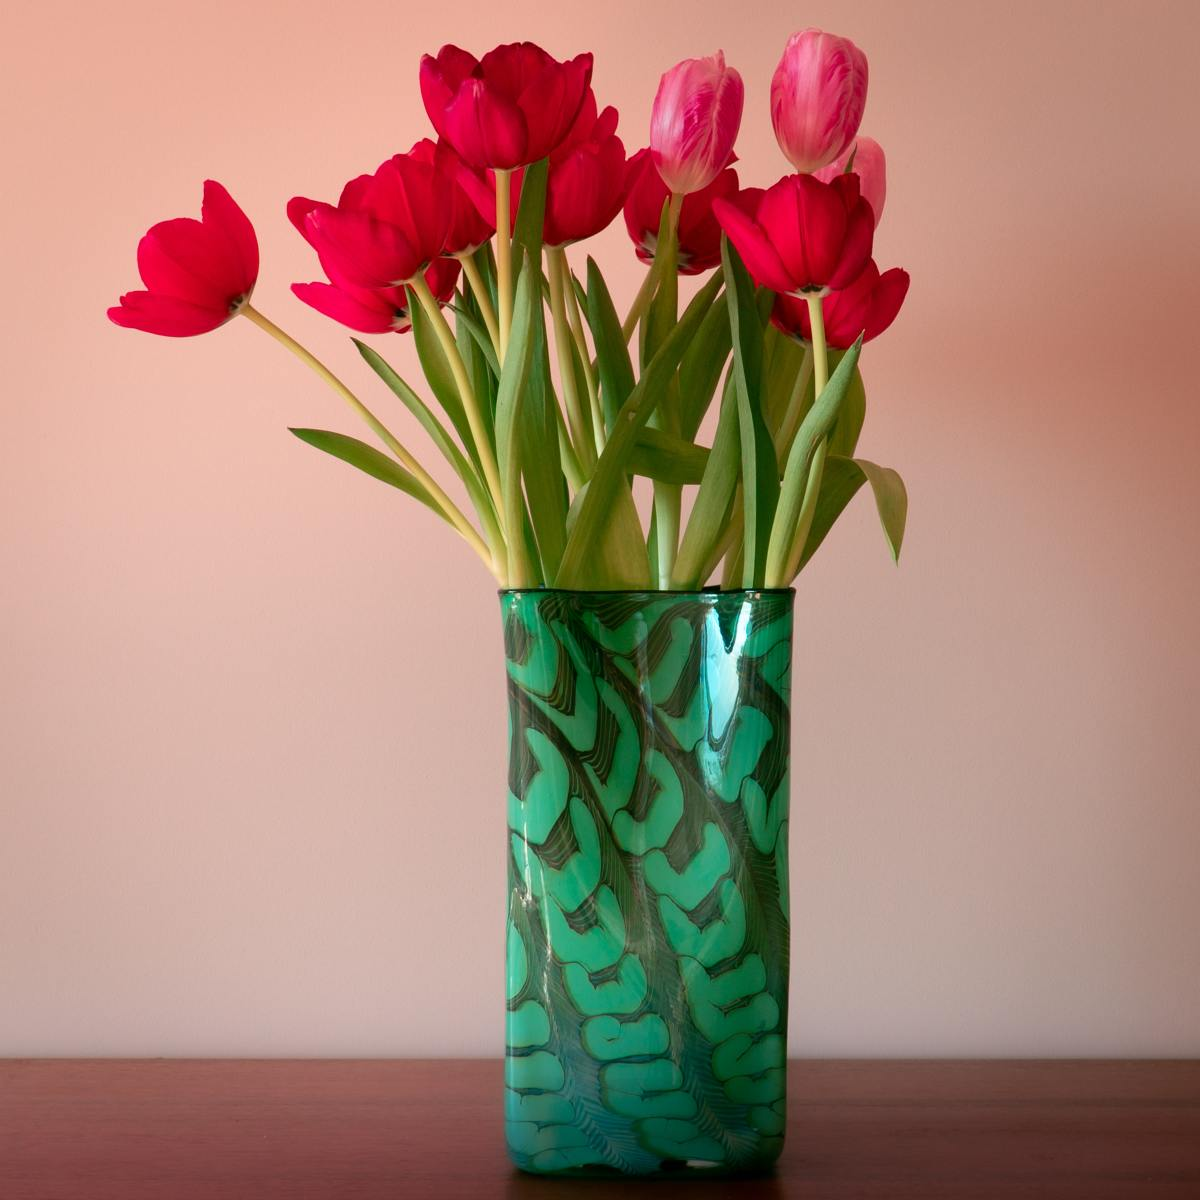 Make her feel extra special this Mom's Day!